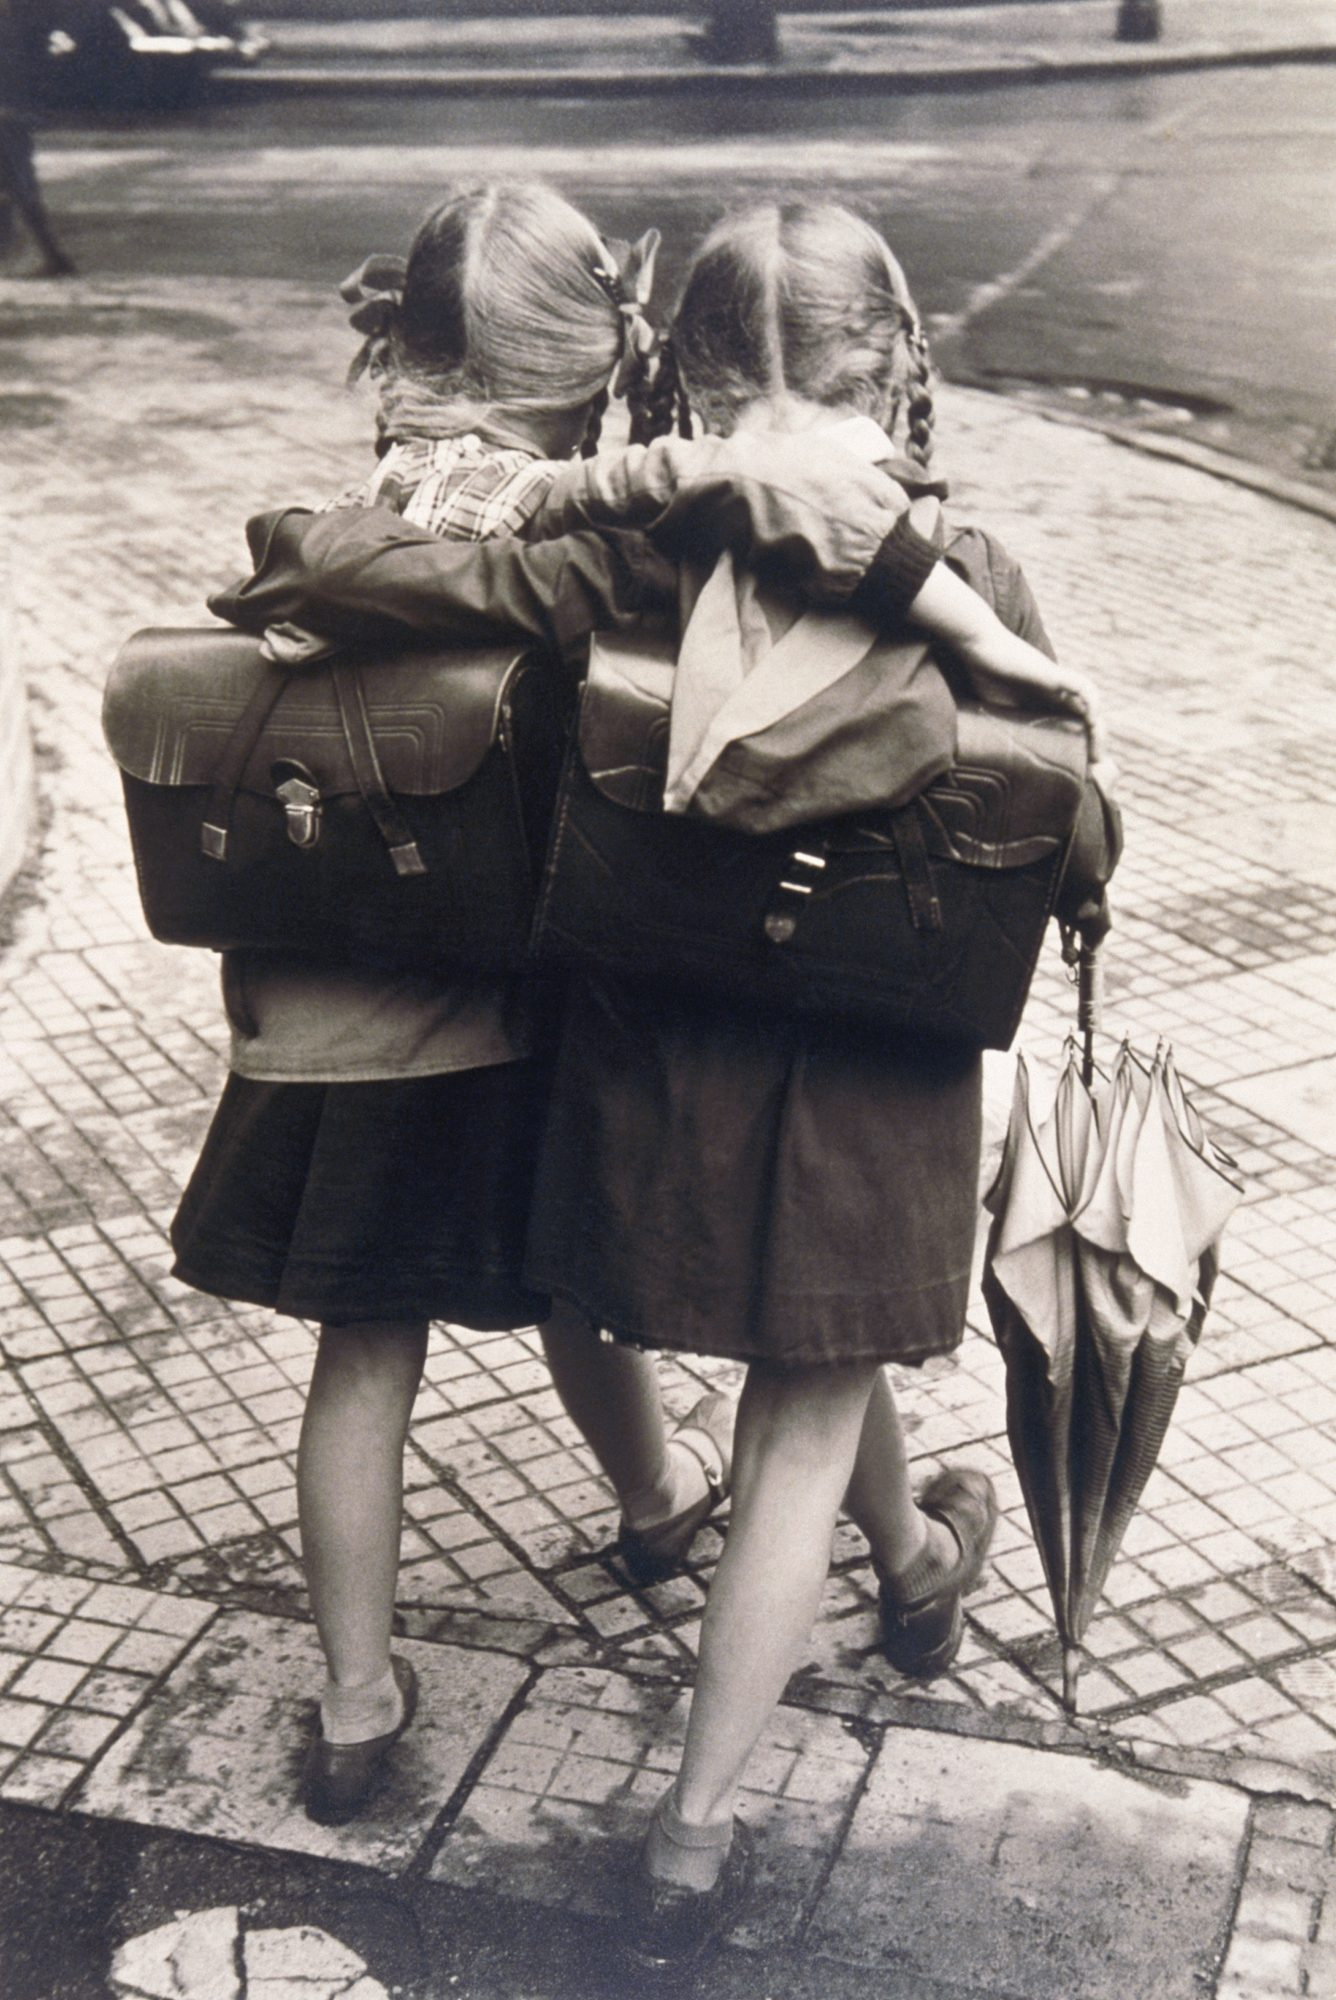 Schoolgirls Walking and Hugging